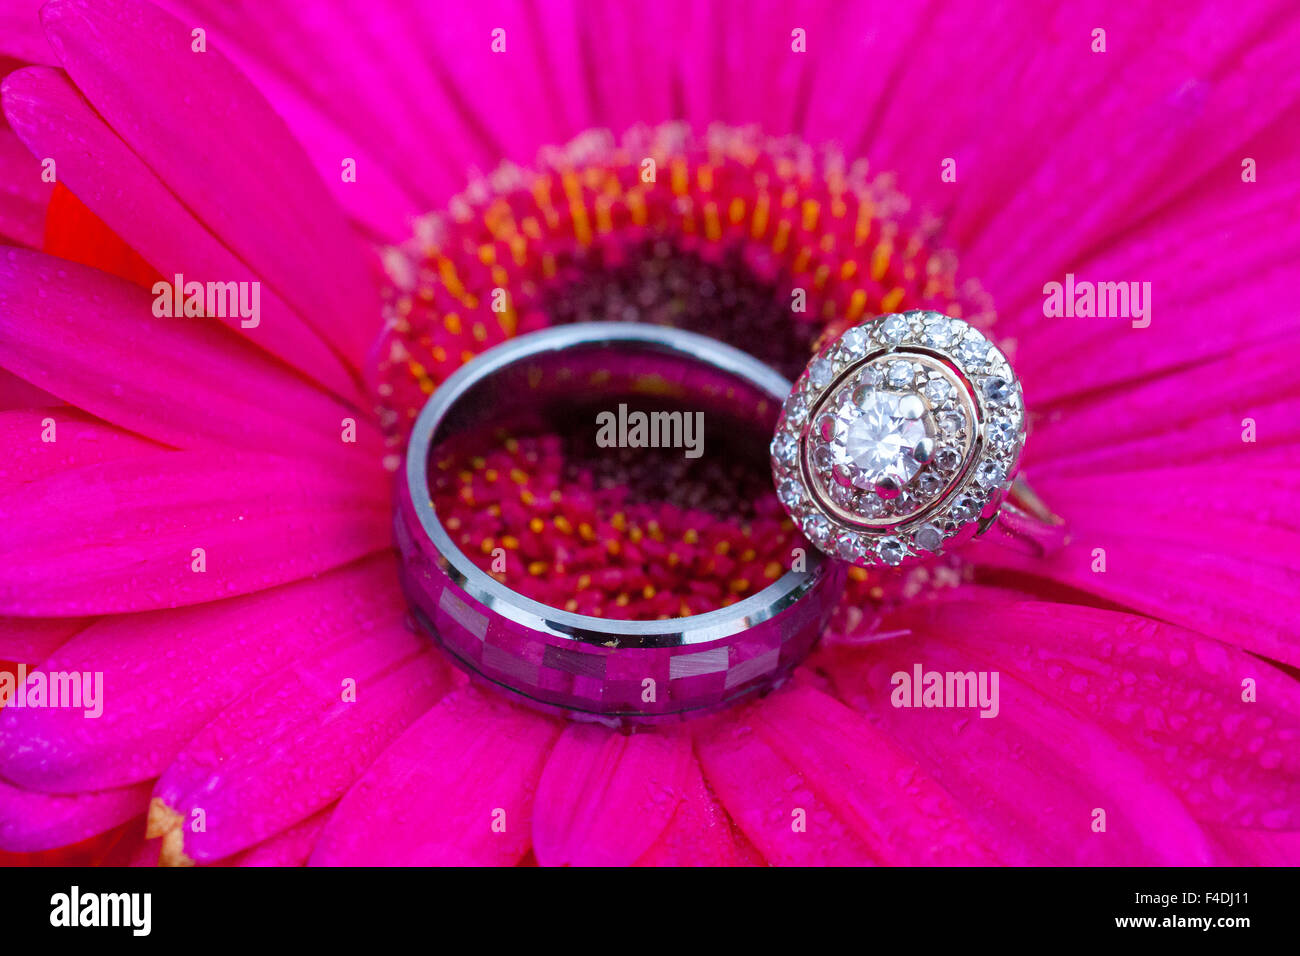 Wedding rings in a flower during a reception, showing the commitment ...